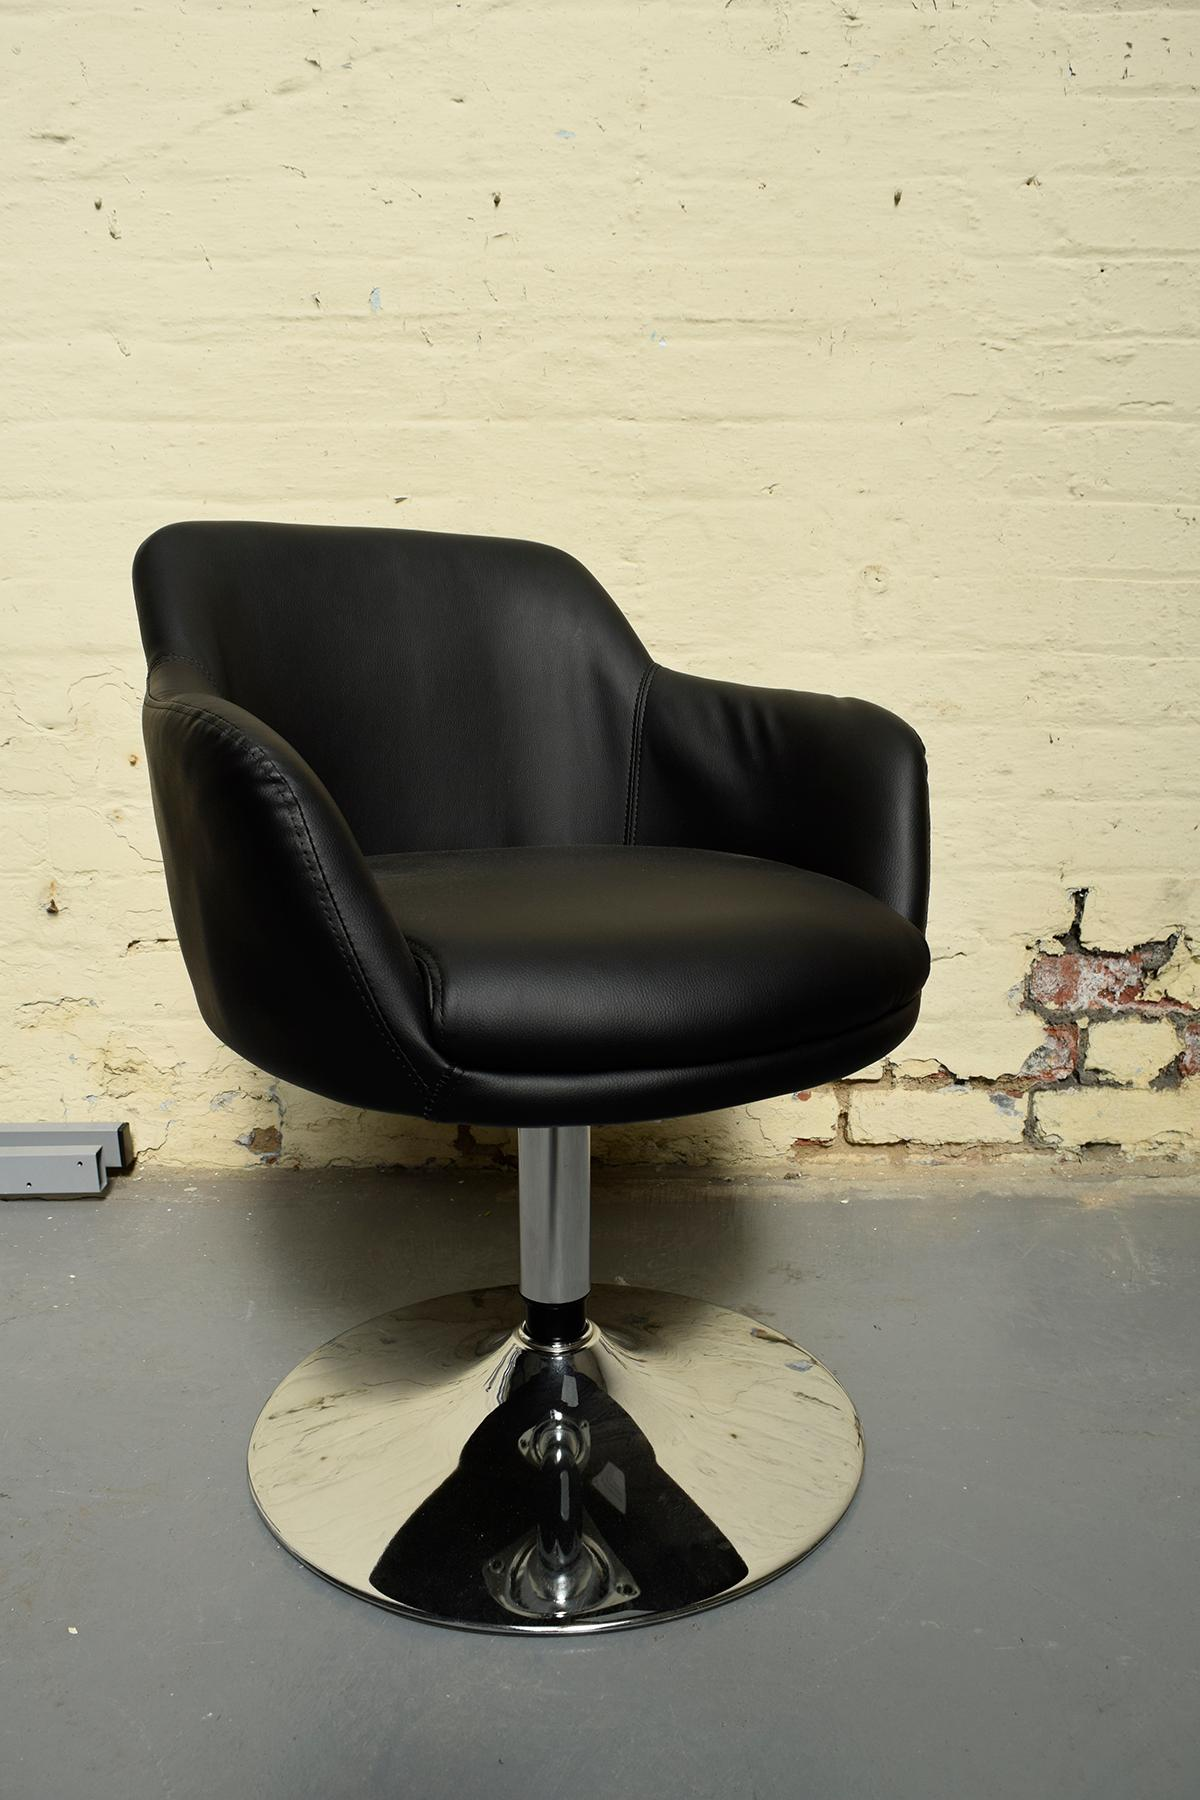 Picture of: Black Faux Leather Swivel Chair Bucket Seat In M12 Manchester For 60 00 For Sale Shpock